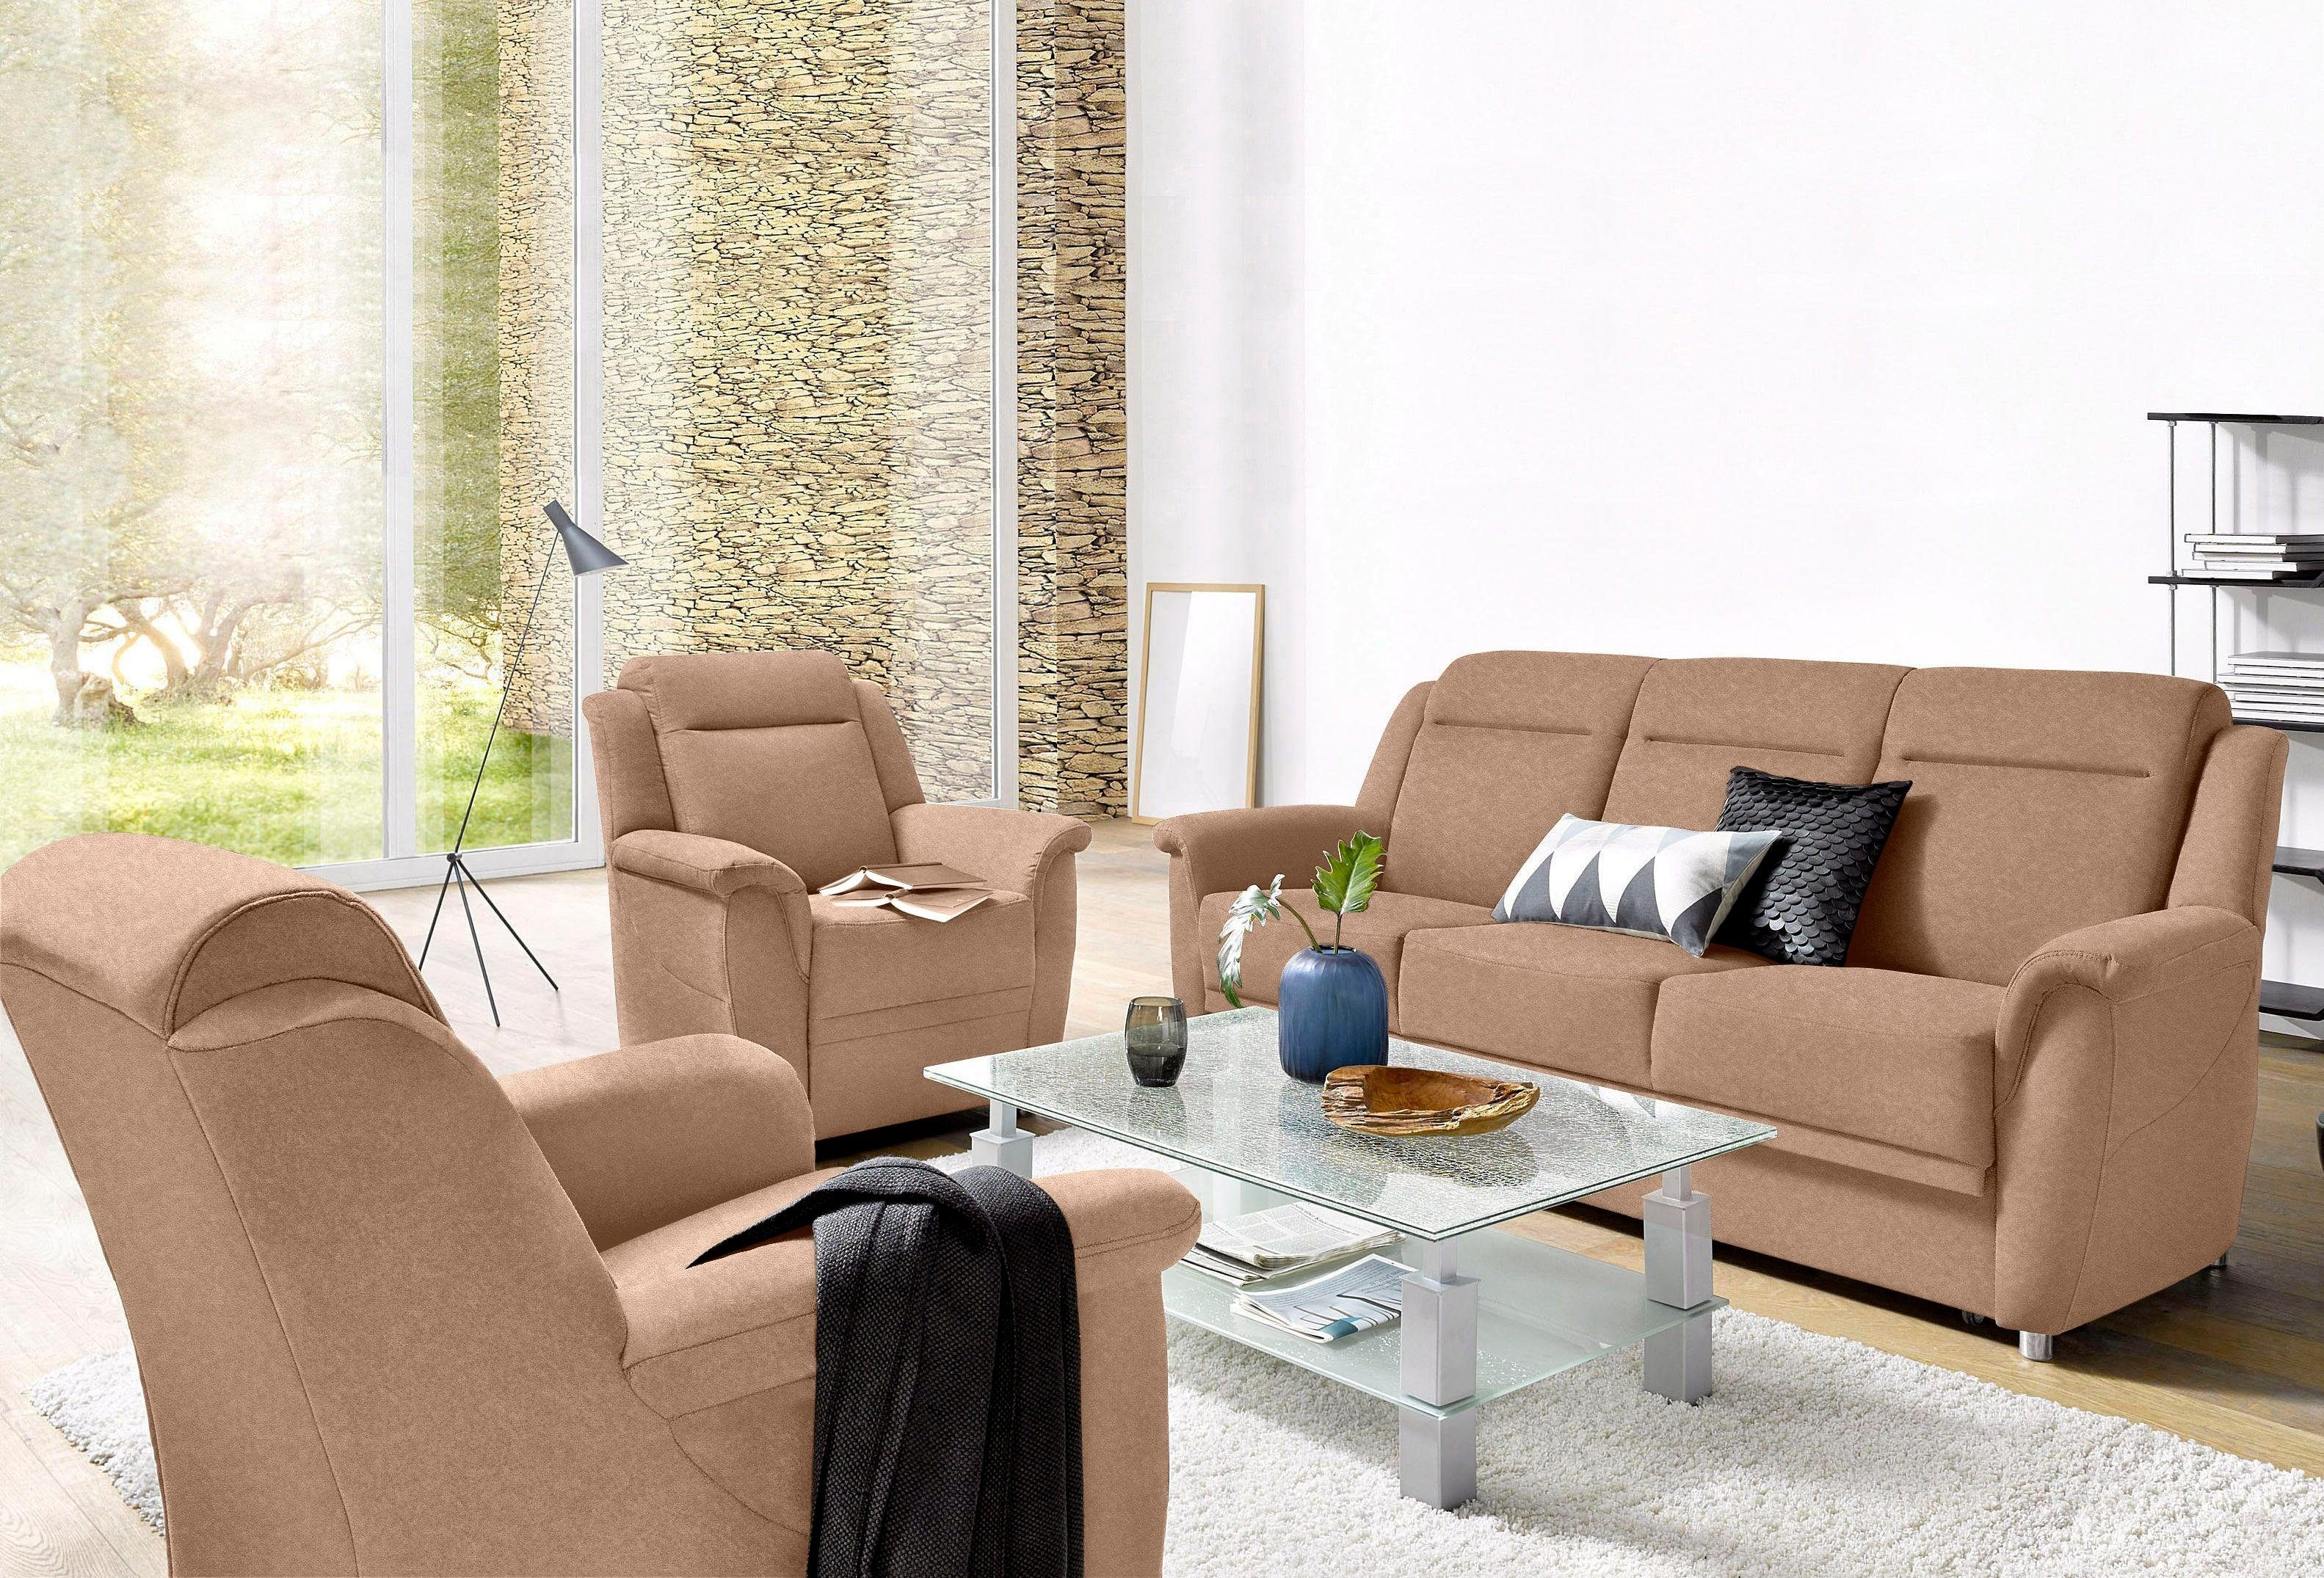 Couchgarnituren Sale Couchgarnituren Sale | Chesterfield Sofa Modern Samt Lila ...